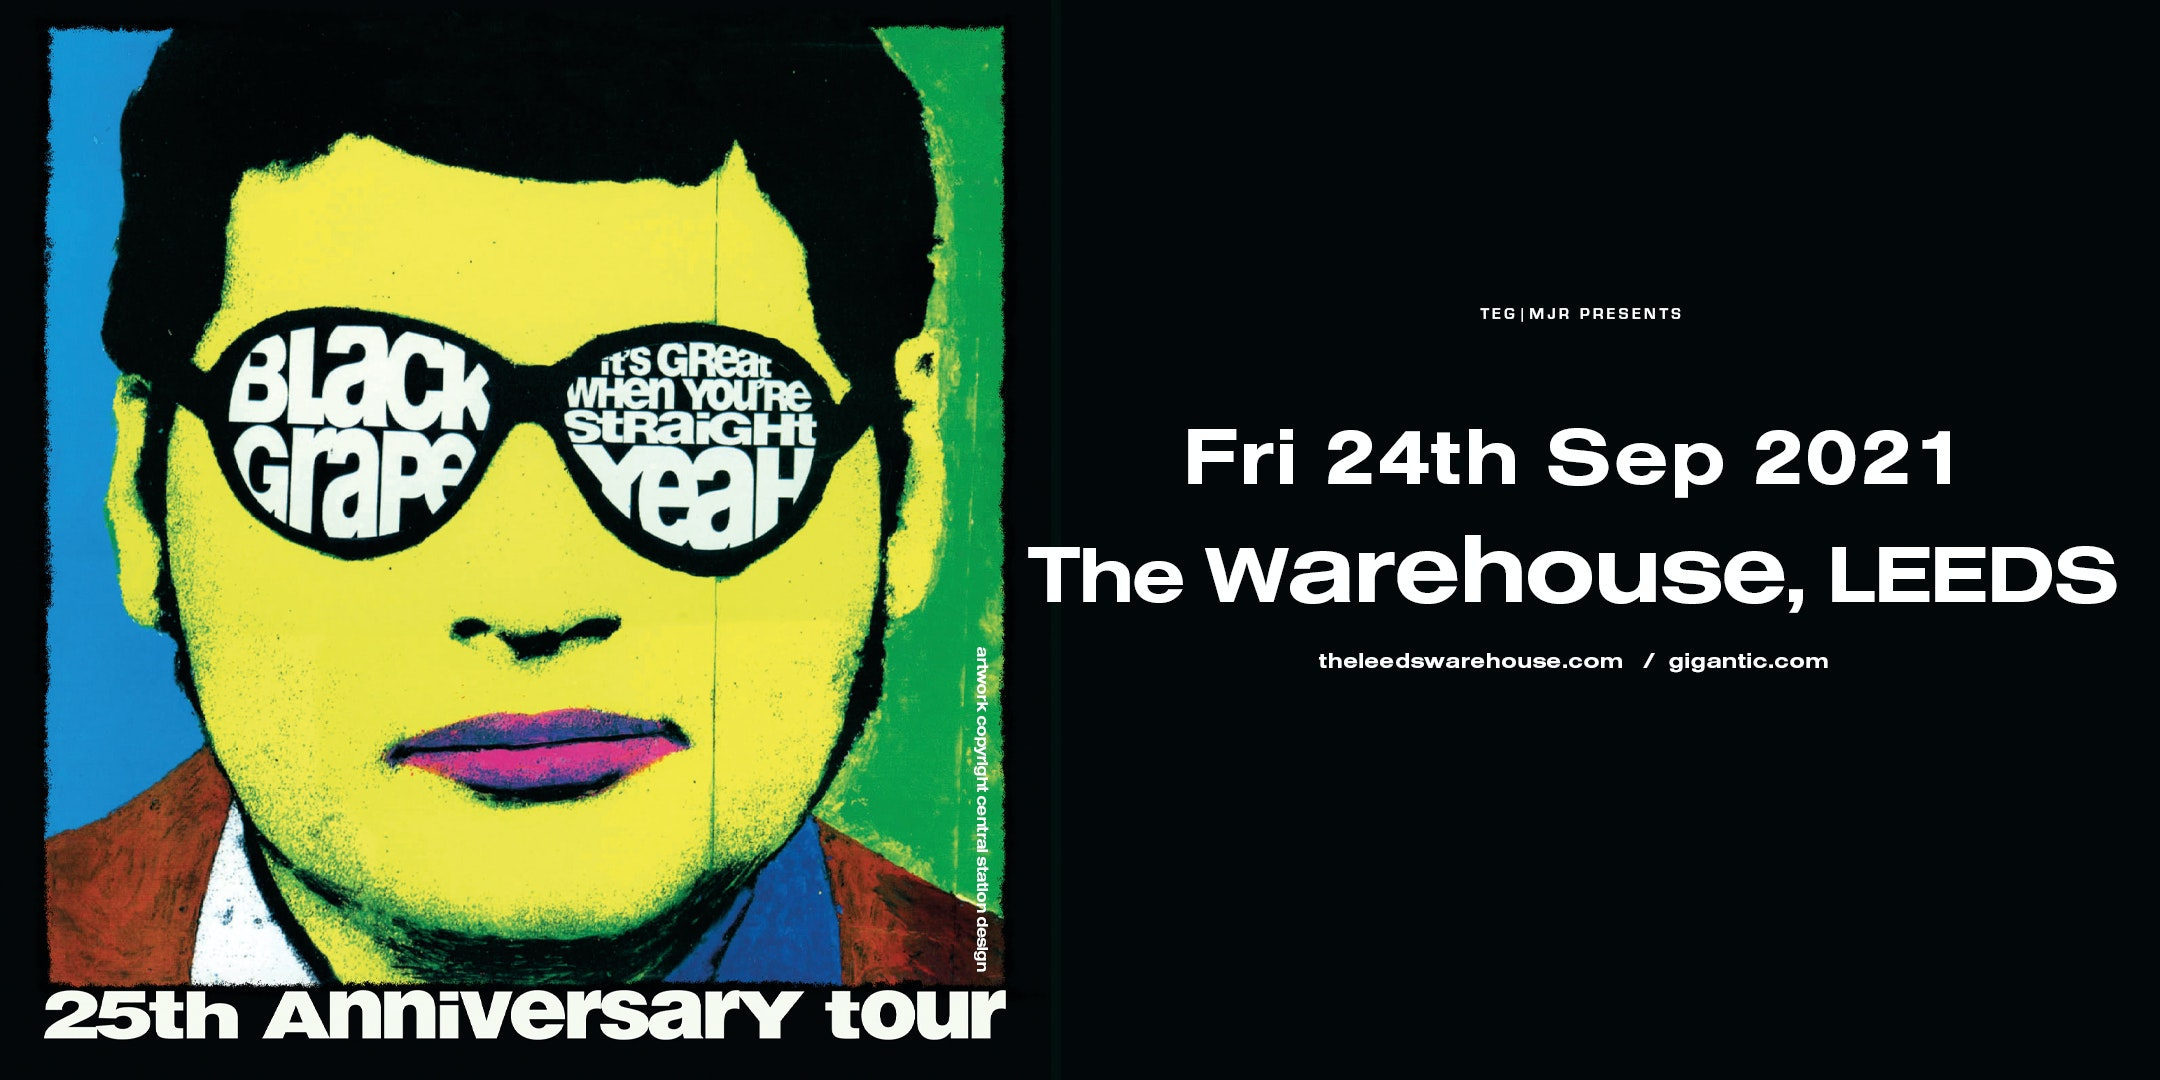 Black Grape – It's Great When You're Straight 25th Anniversary Tour – Live